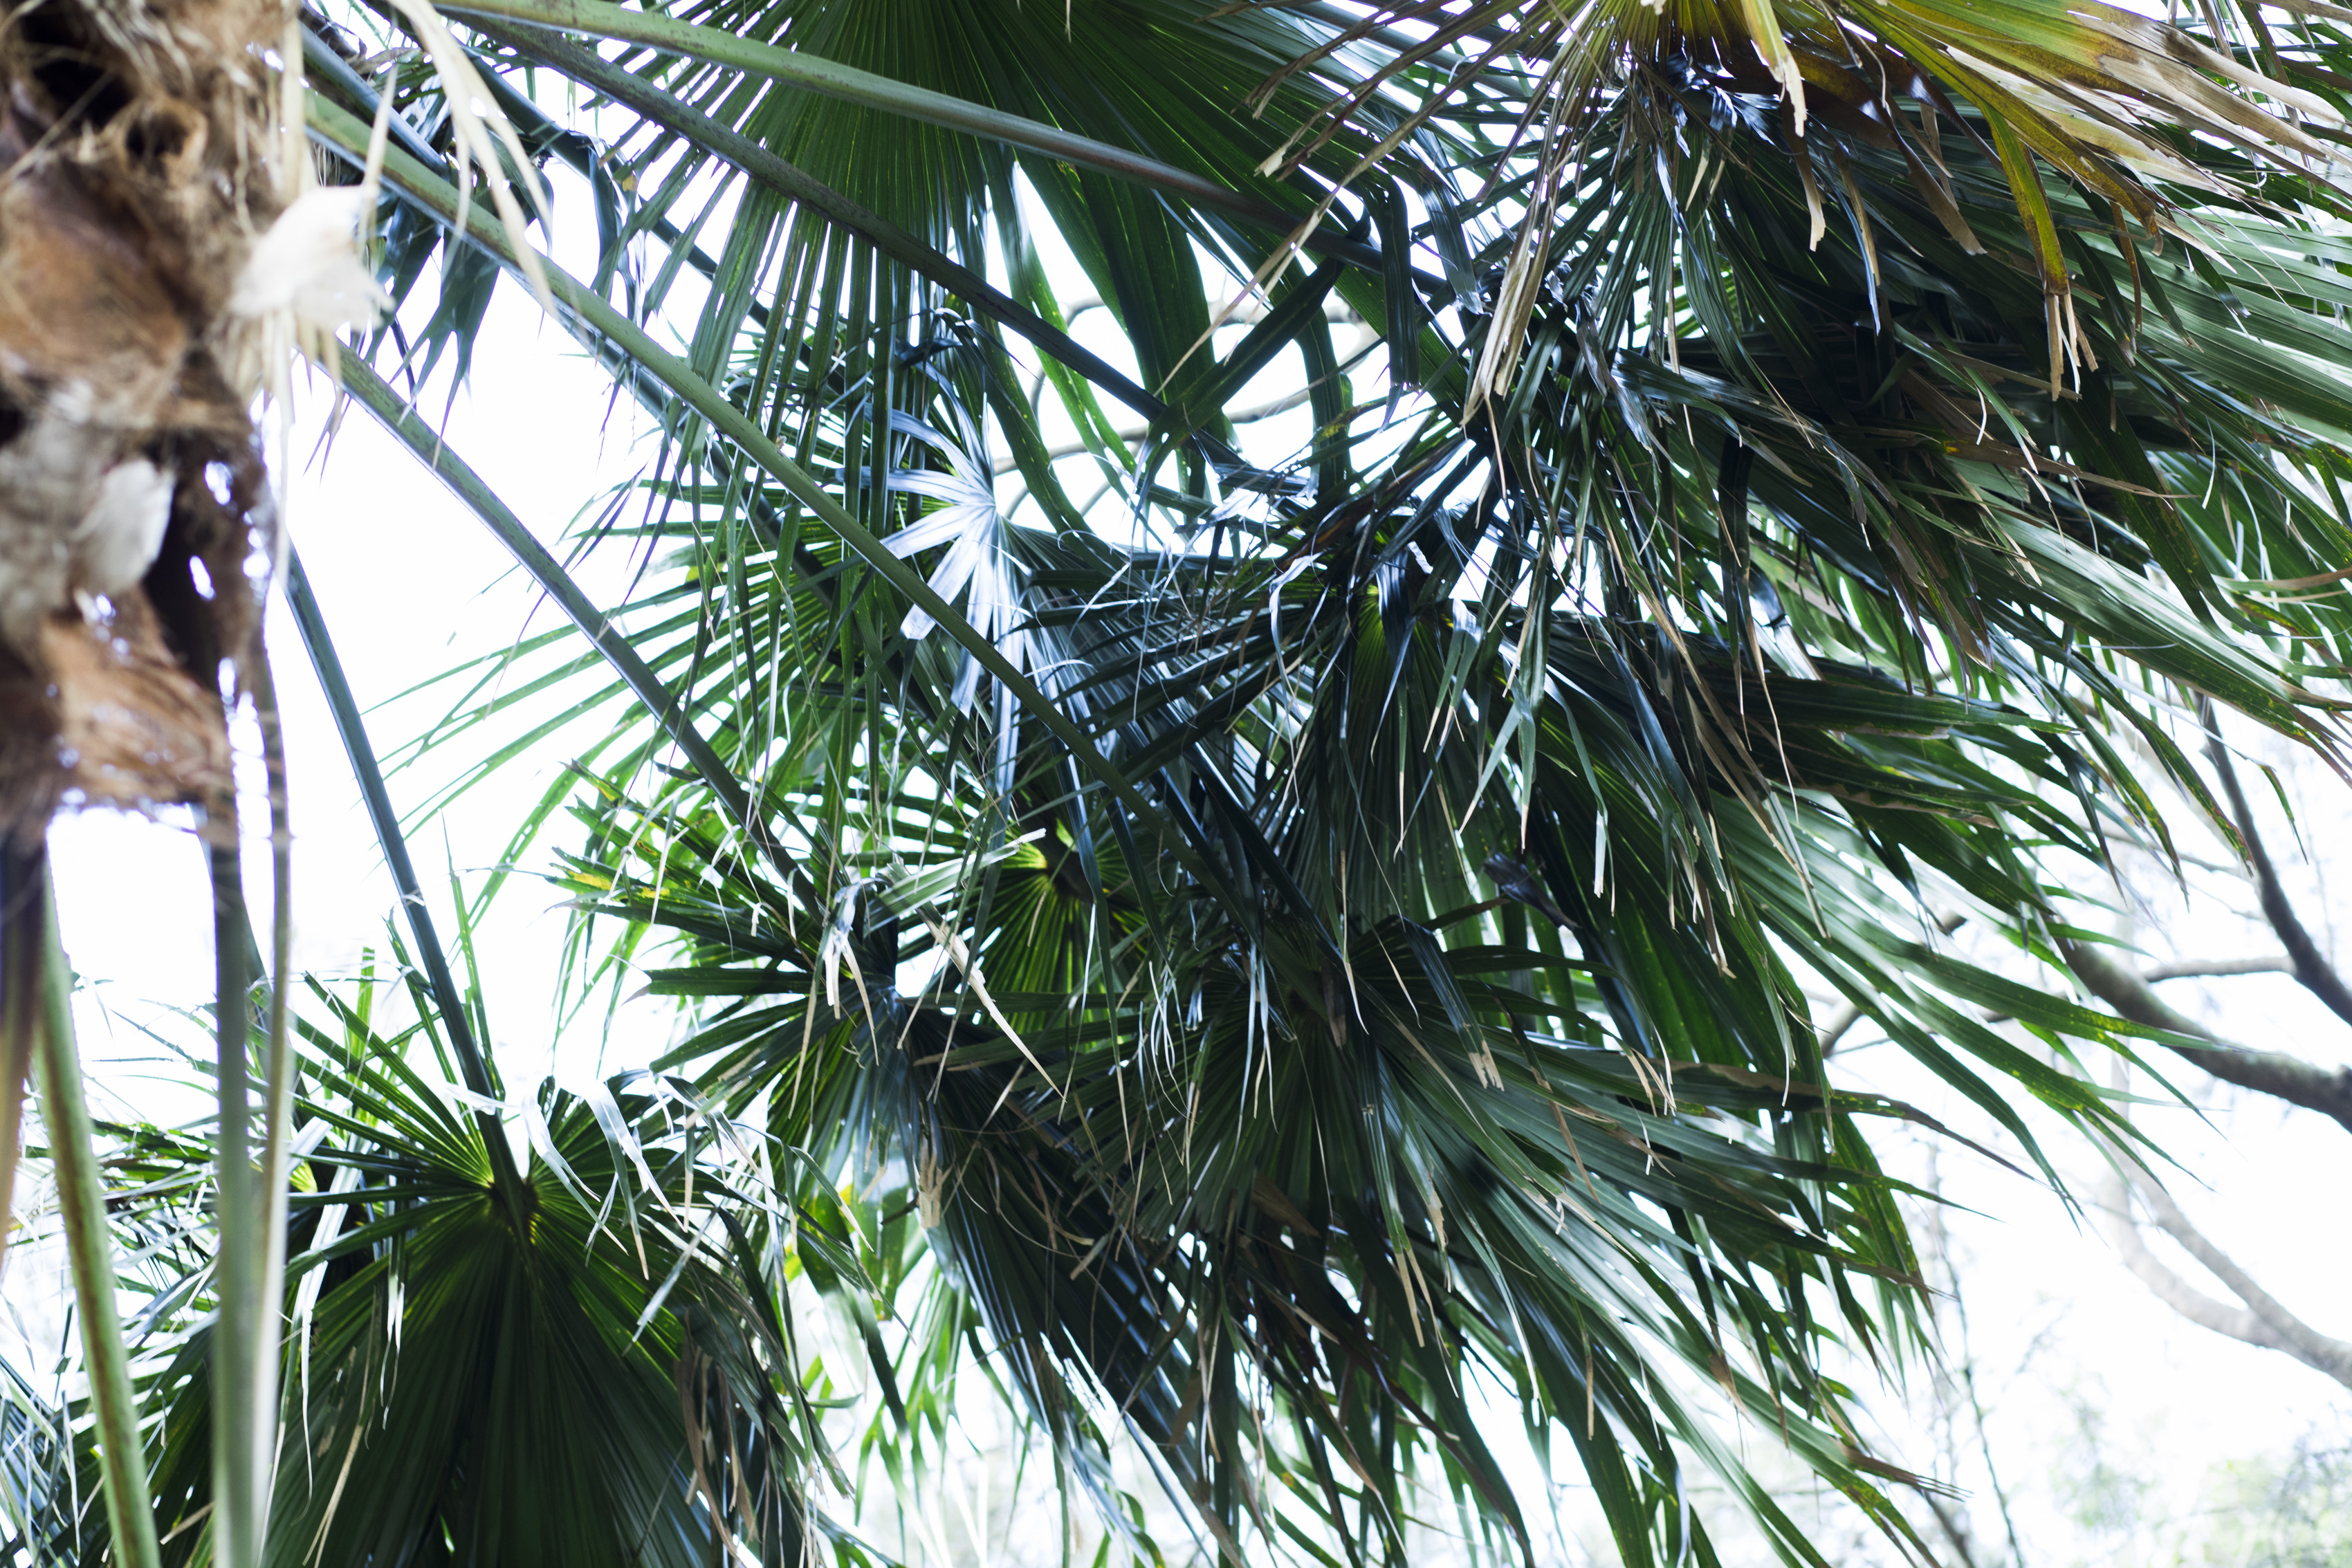 Close-up photograph of a cabbage tree palm and its fronds